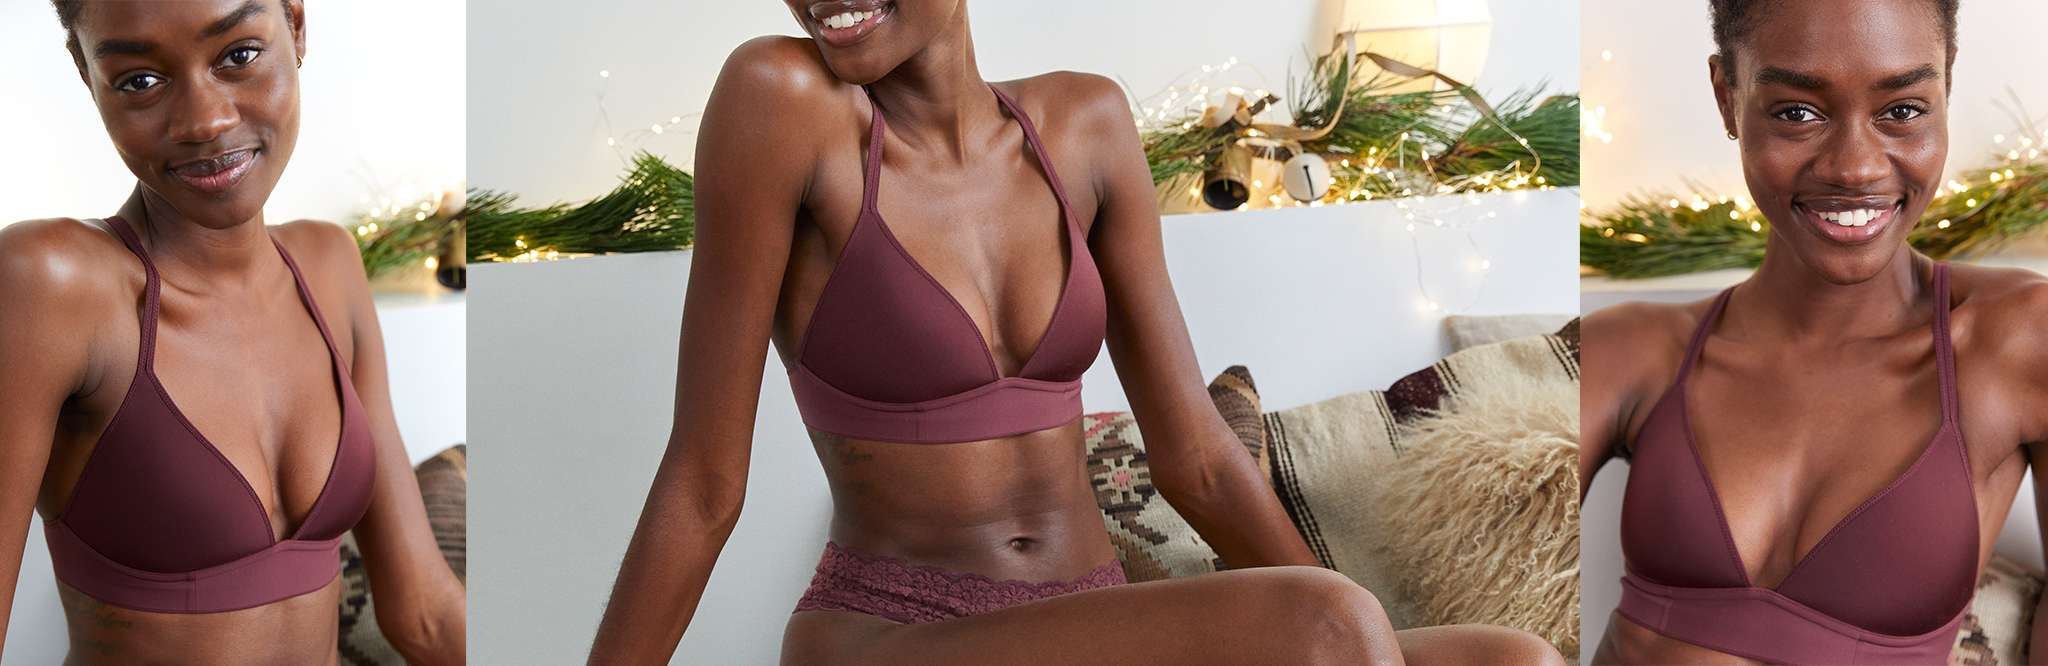 Aerie Wireless Bras